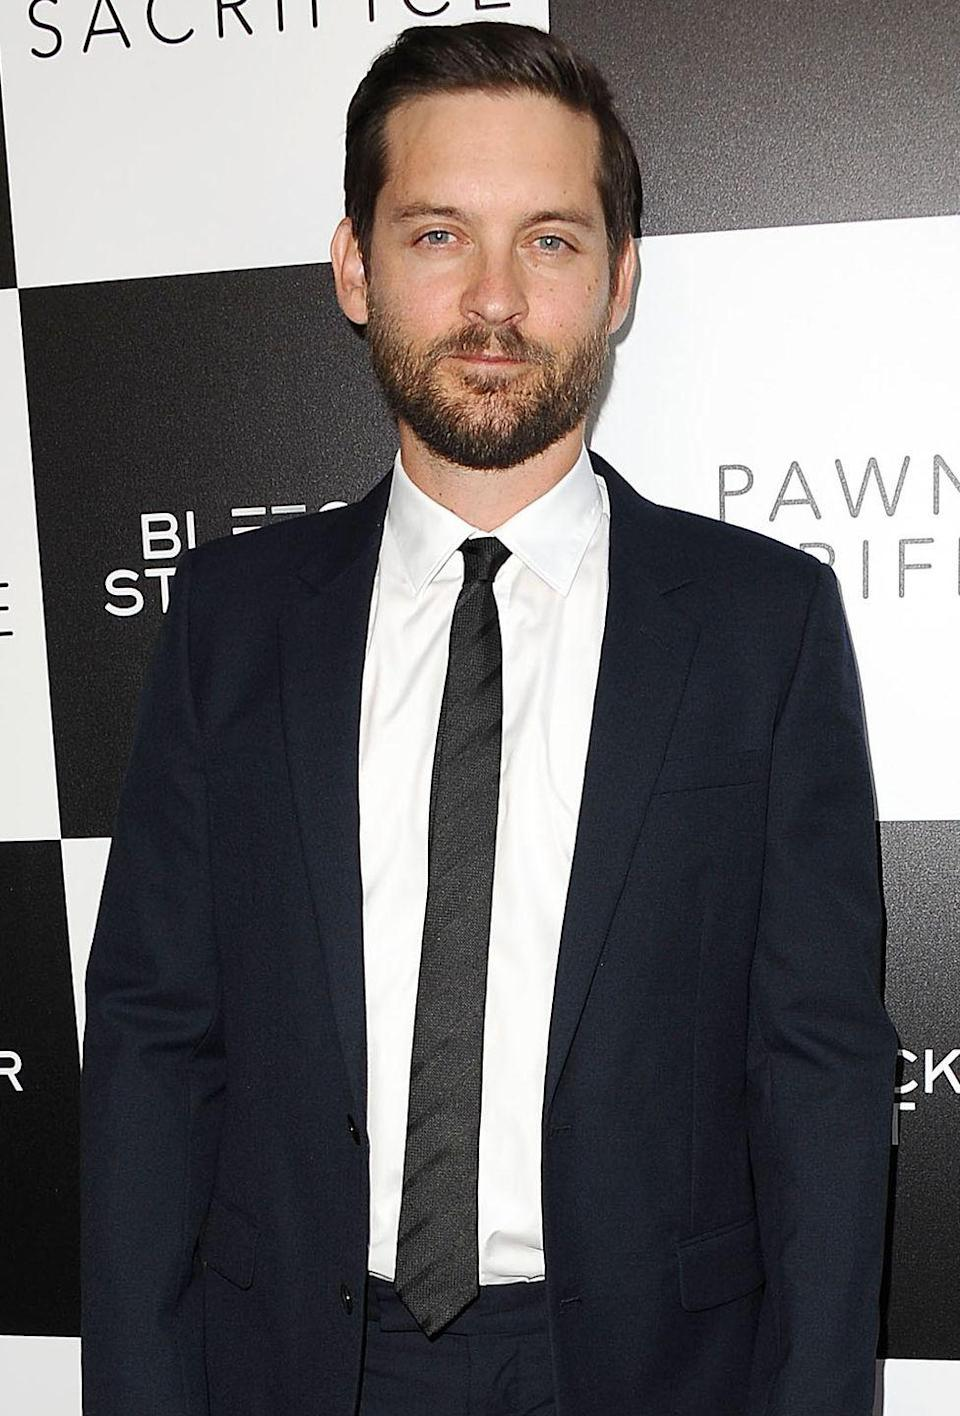 """<p>The <em>Spiderman</em> star has been open about his sobriety in many interviews, telling <a href=""""https://www.theguardian.com/film/2013/may/11/tobey-maguire-interview"""" rel=""""nofollow noopener"""" target=""""_blank"""" data-ylk=""""slk:The Guardian"""" class=""""link rapid-noclick-resp"""">The Guardian</a> """"I stopped consuming any mind-altering substances when I was 19 years-old. And I've been abstinent since then.""""</p>"""